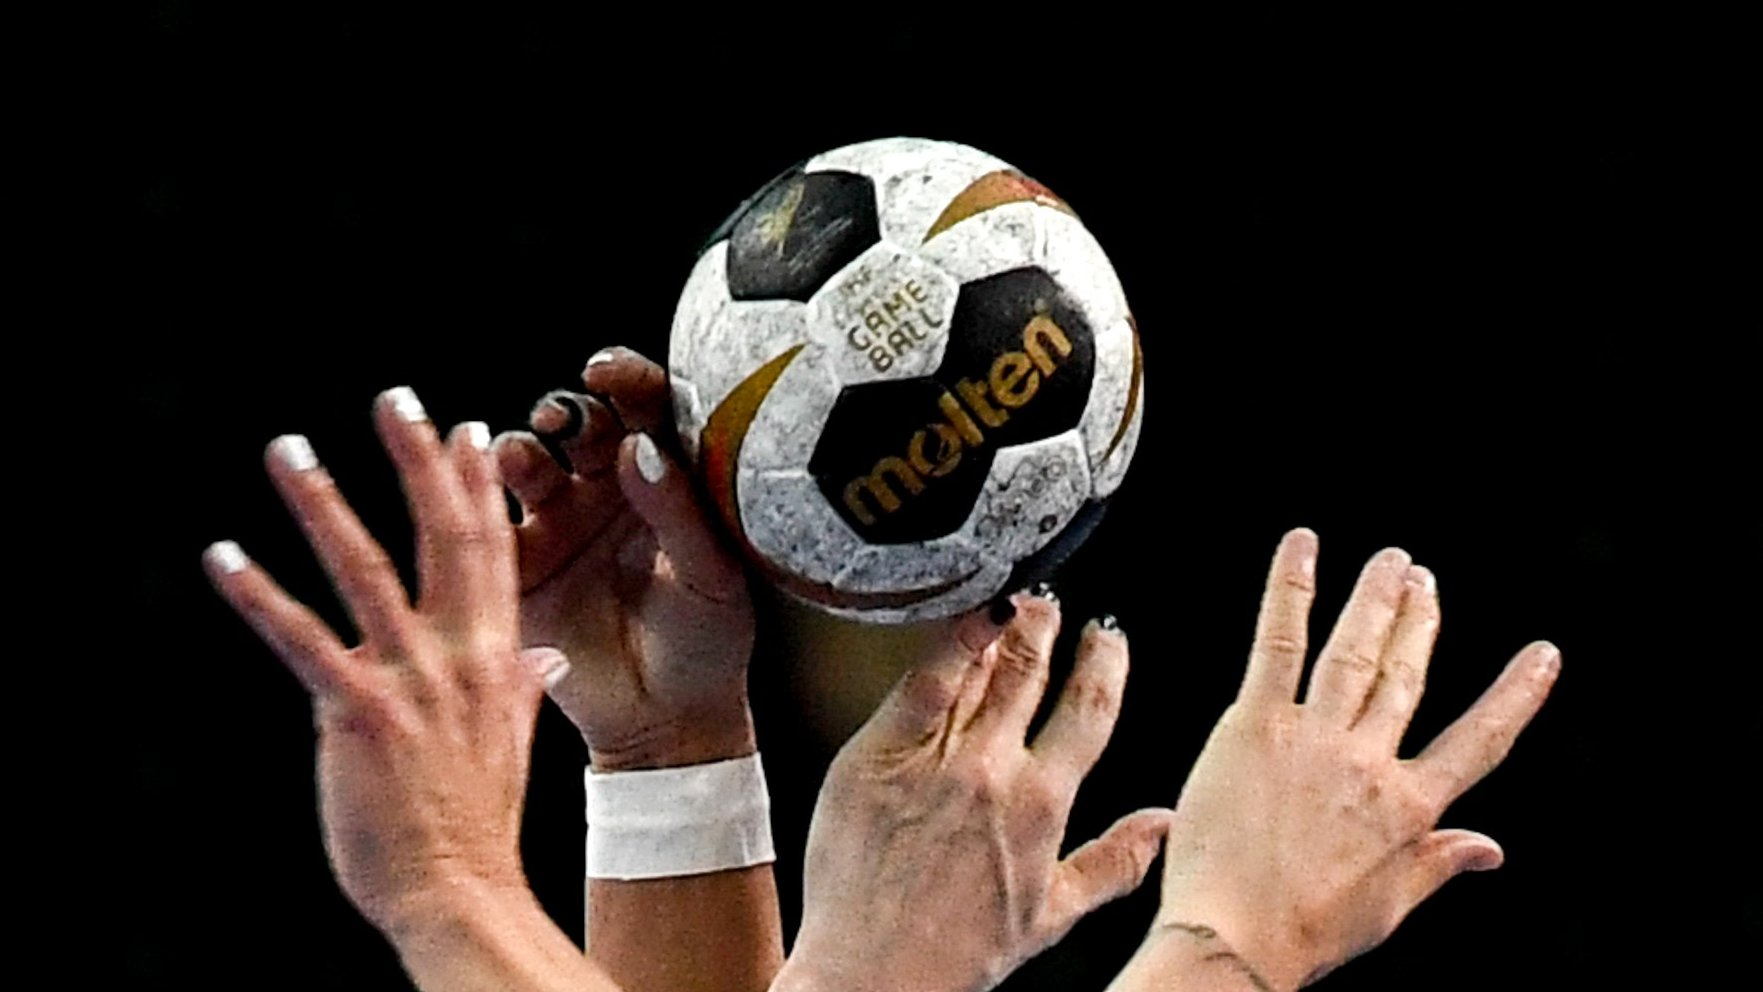 epa06377458 Players trie to catch the ball during the match between Germany and Netherlands at the Women Handball World Championship in Leipzig, Germany, 08 December 2017.  EPA/FILIP SINGER